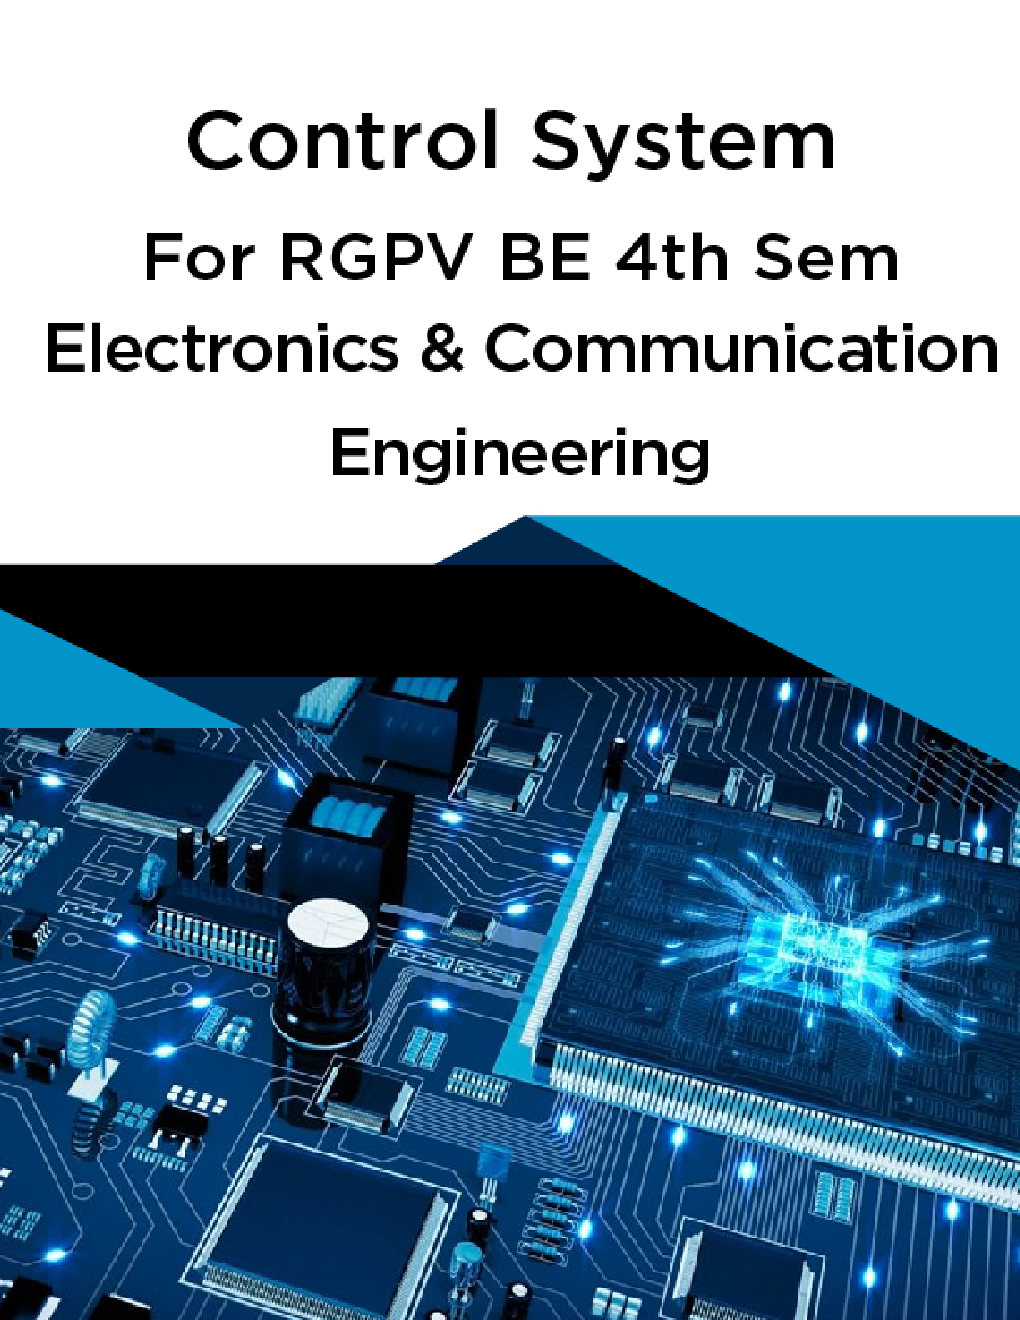 Control System For RGPV BE 4th Sem Electronics & Communication Engineering - Page 1